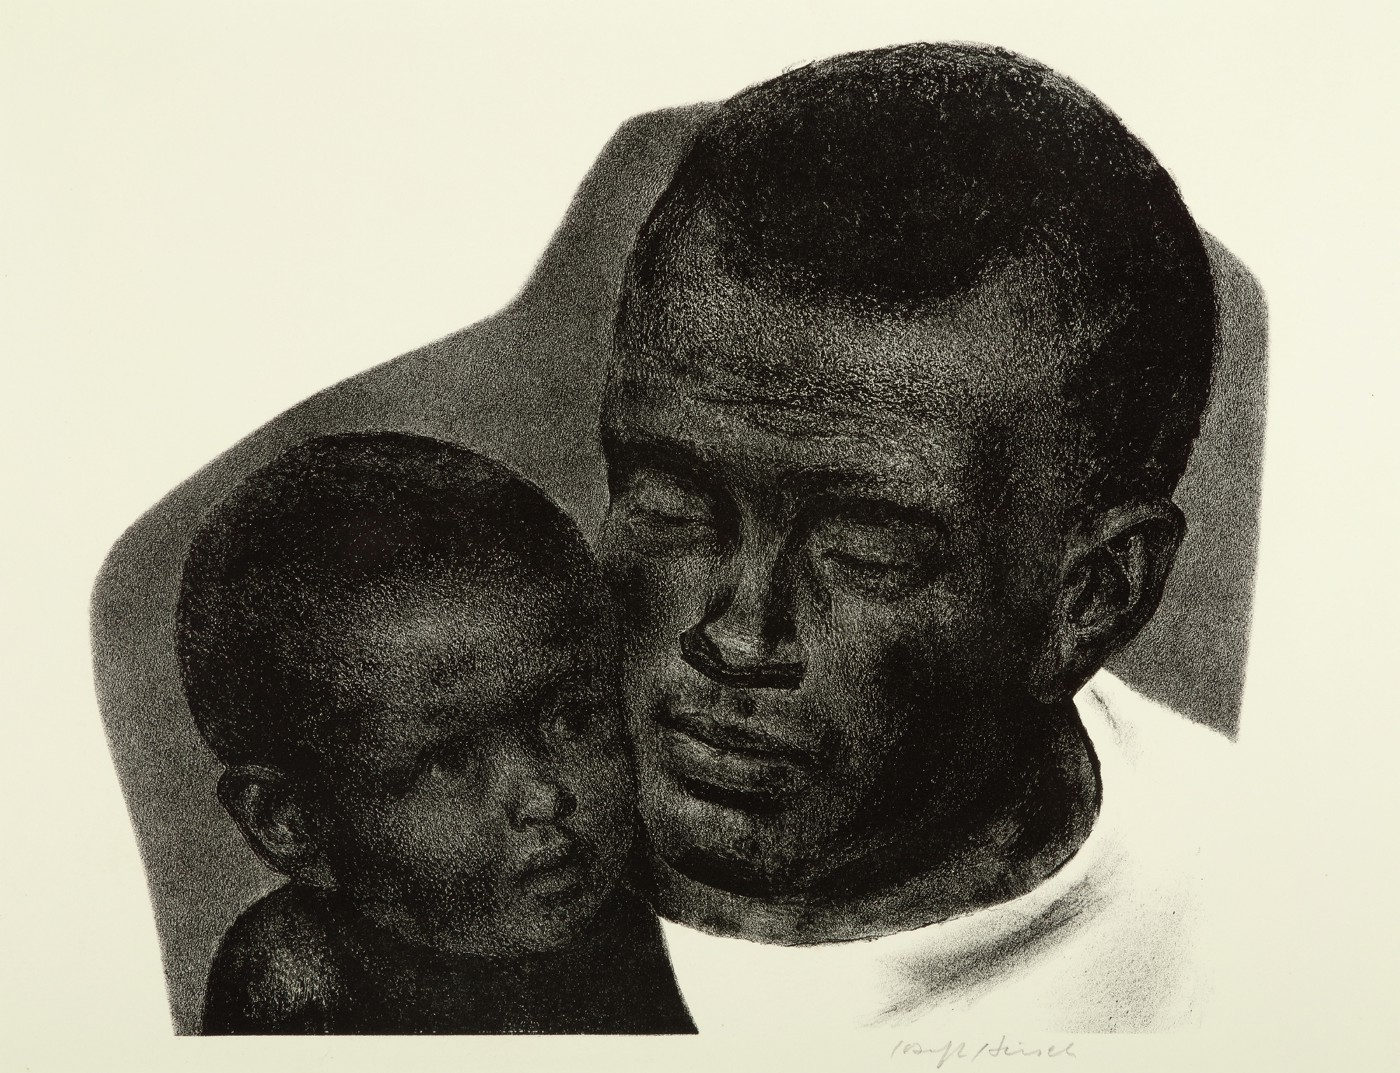 Beautiful dark lithograph of a Black father and soon in a peaceful moment, faces pressed against each other.